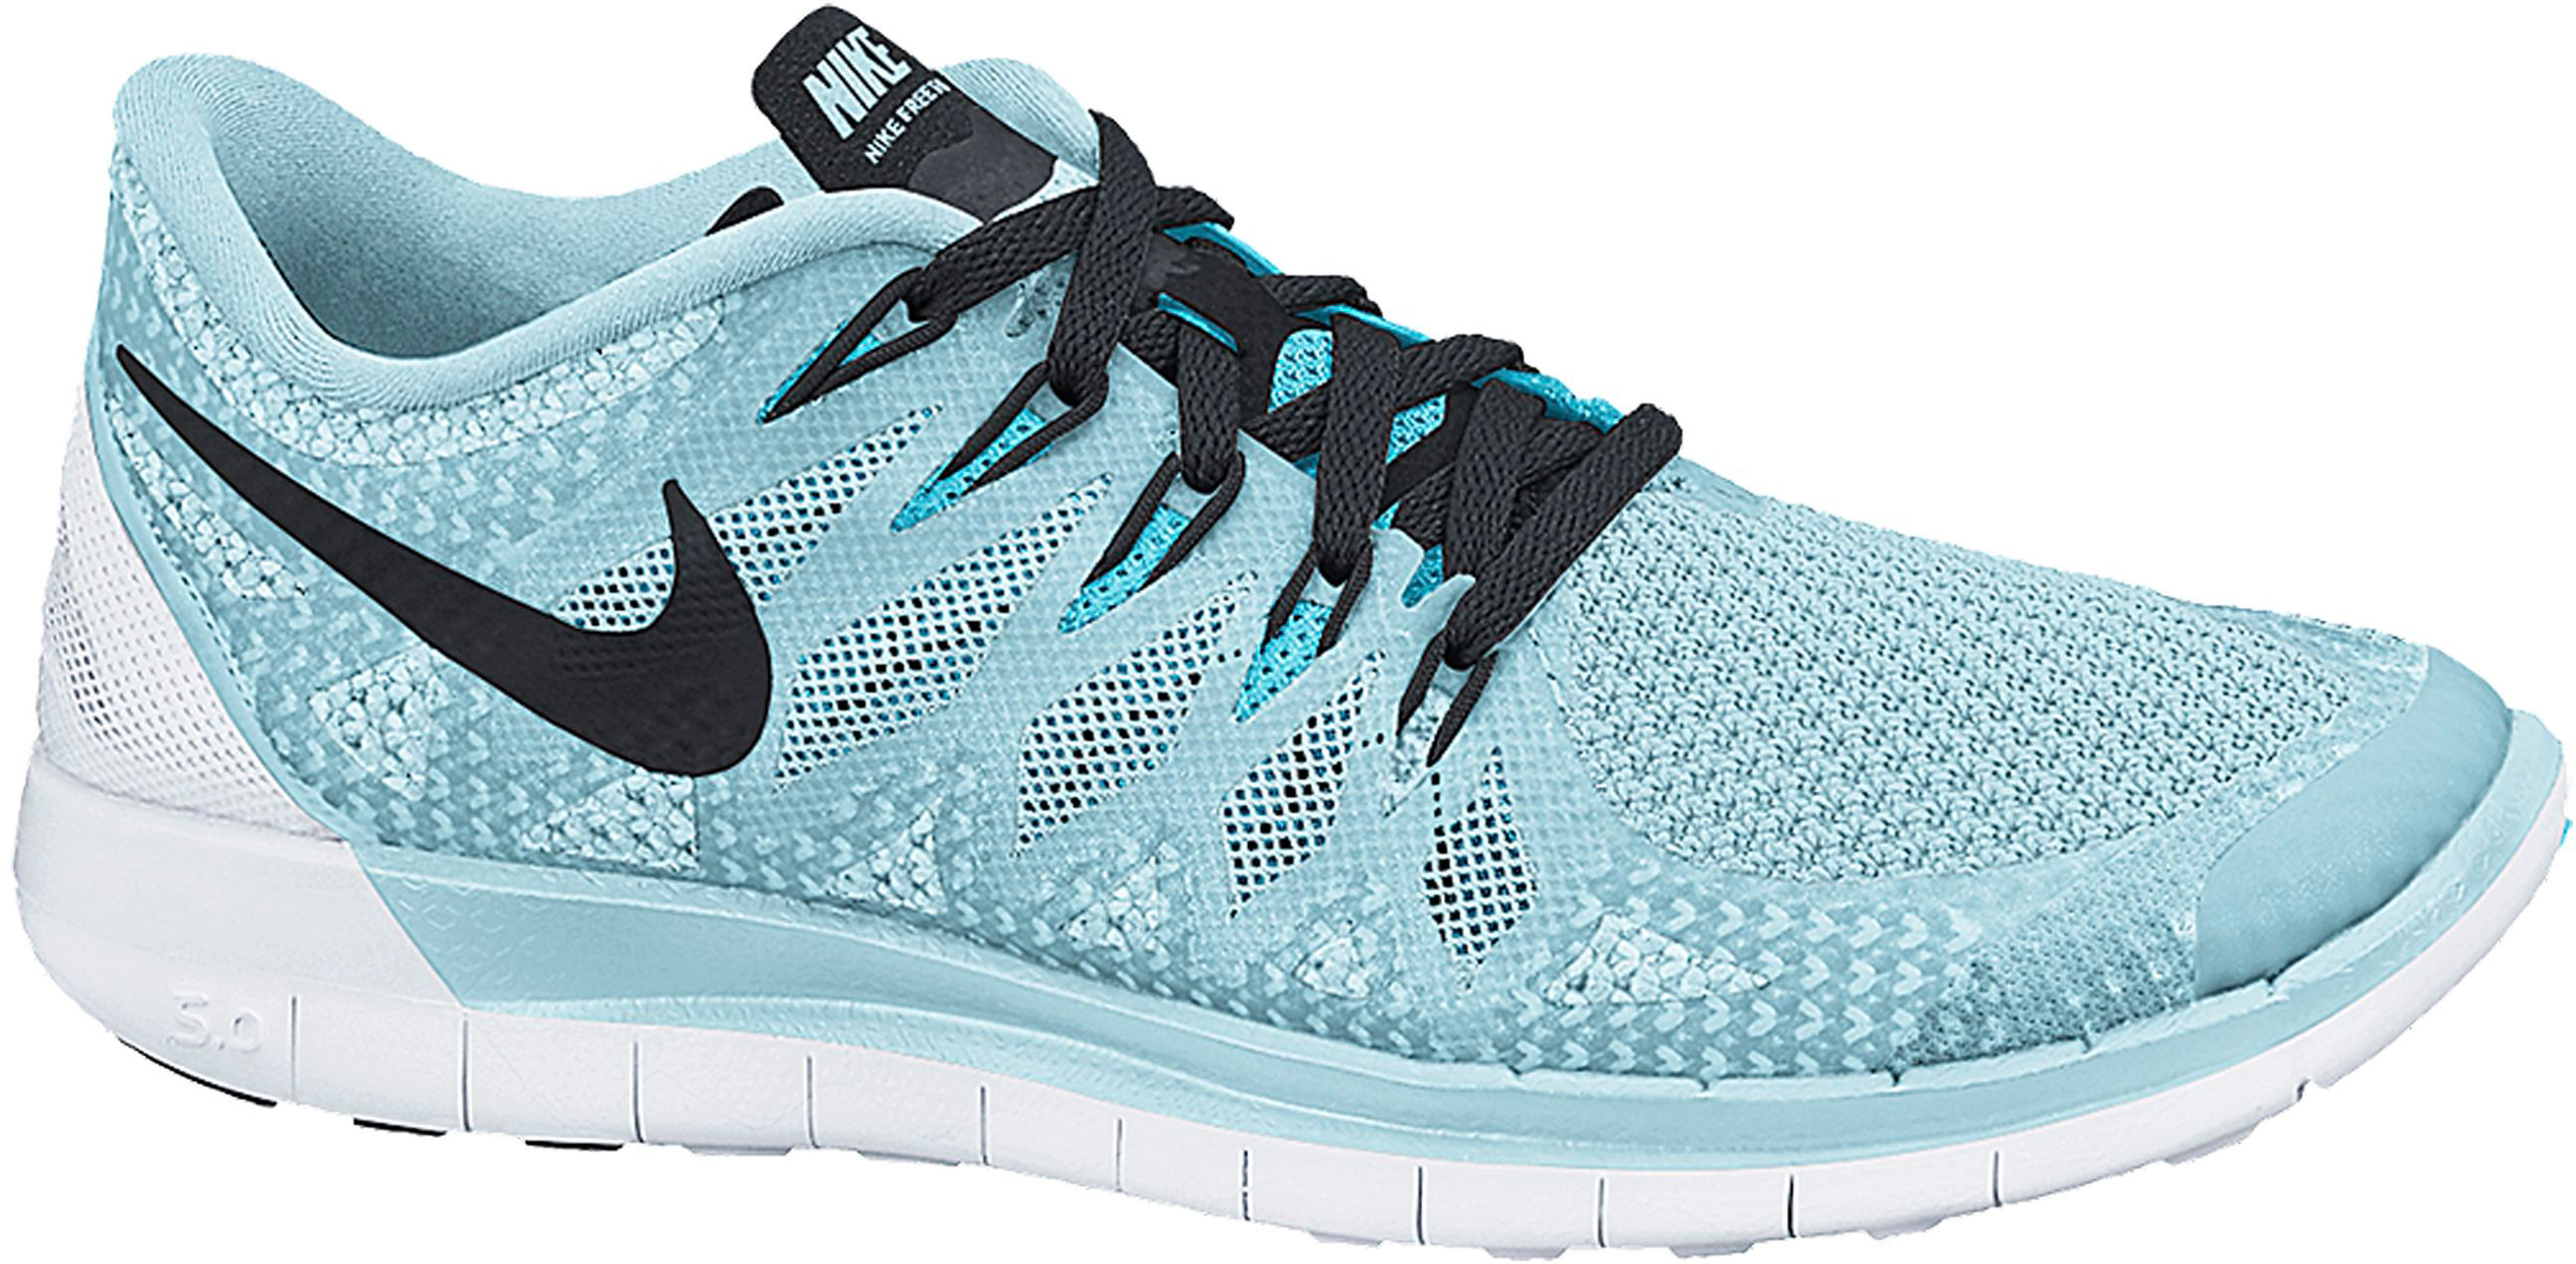 nike running shoes. nike running shoes light blue